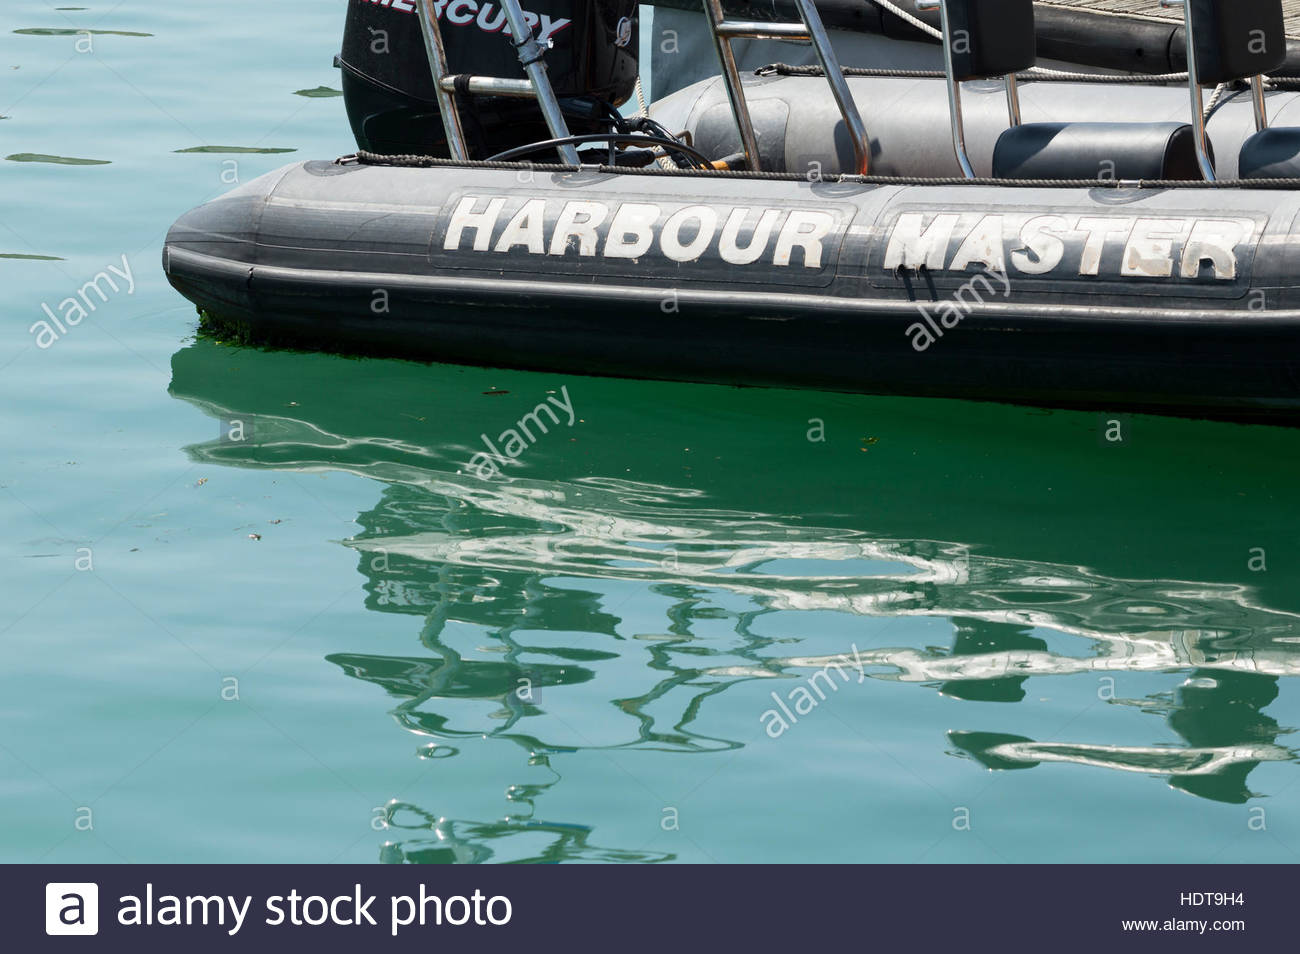 Harbour Master written on a semi-dirigible boat in Poole, Dorset, England - Stock Image